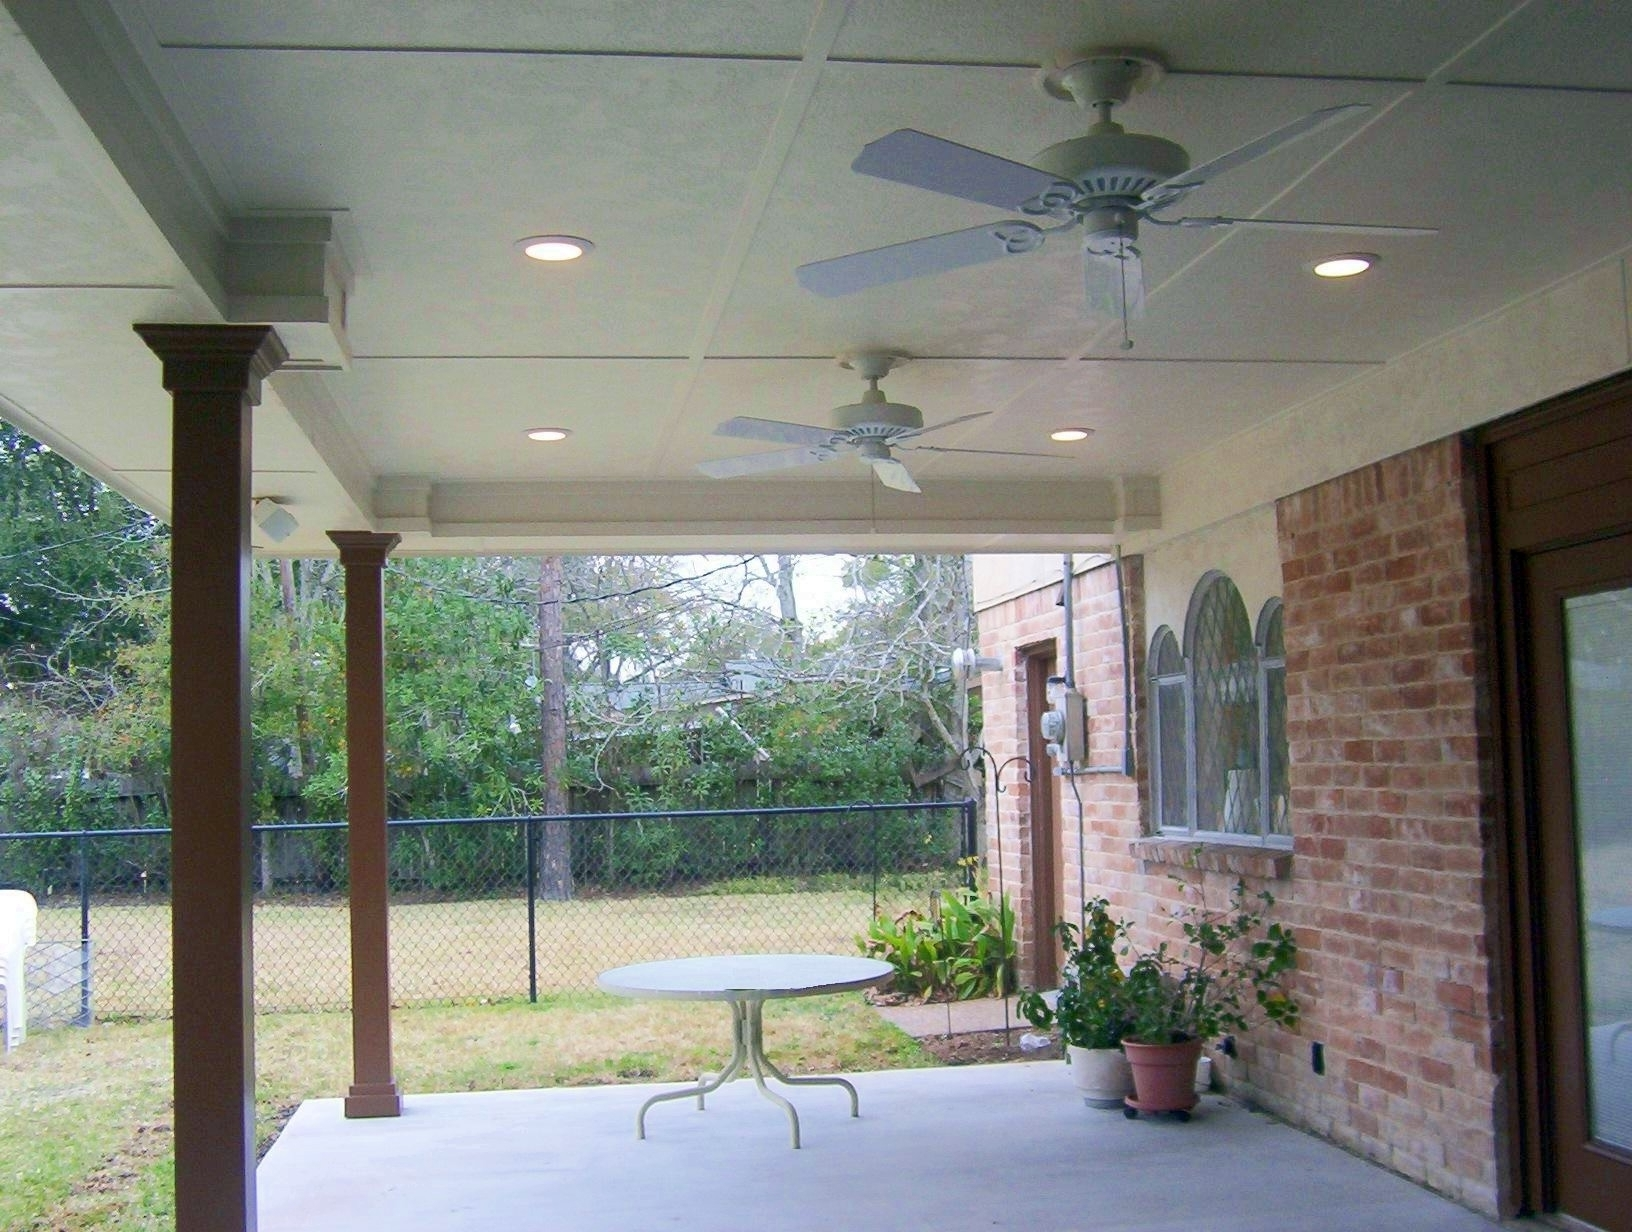 Fabulous Outdoor Patio Ceiling Fans Cool Outdoor Ceiling Fans Patio For Newest Outdoor Ceiling Fans For Porch (View 3 of 20)